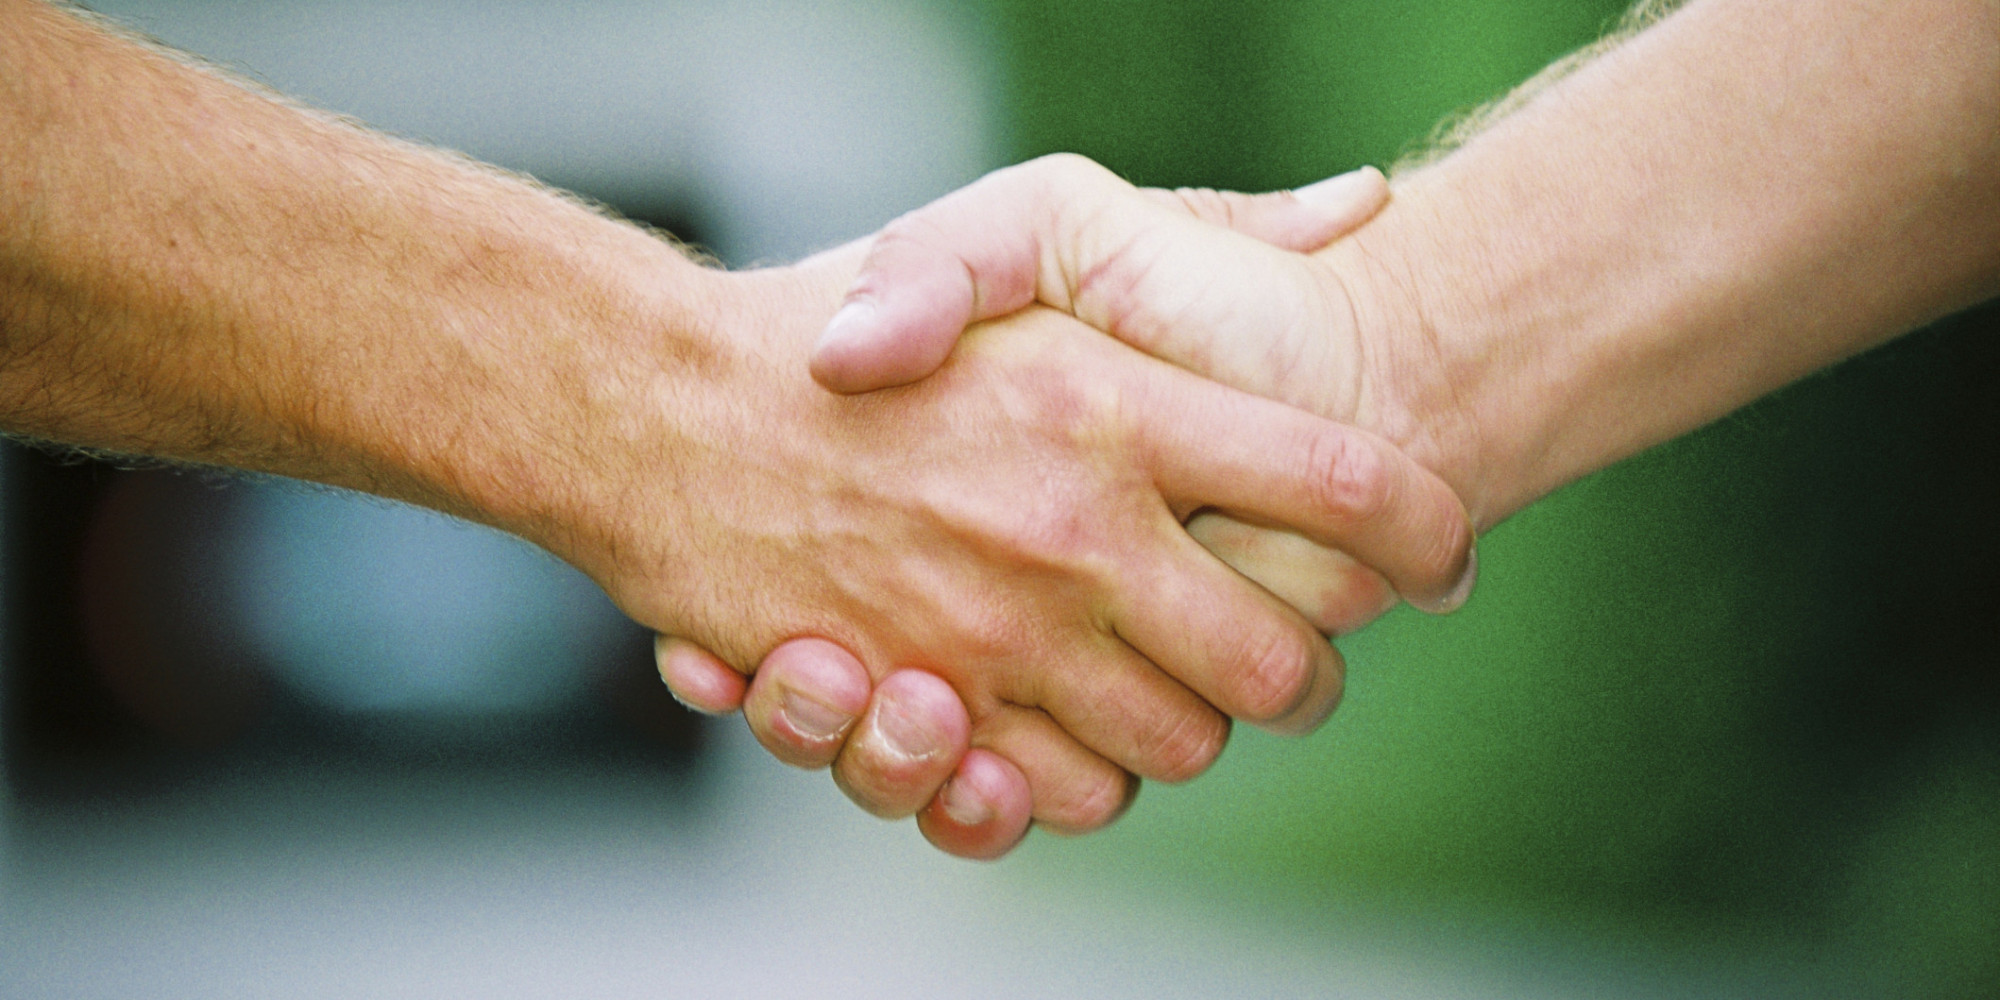 Handshake Grip Can Indicate Person's True Age, Study Finds | HuffPost Business Meeting Handshake